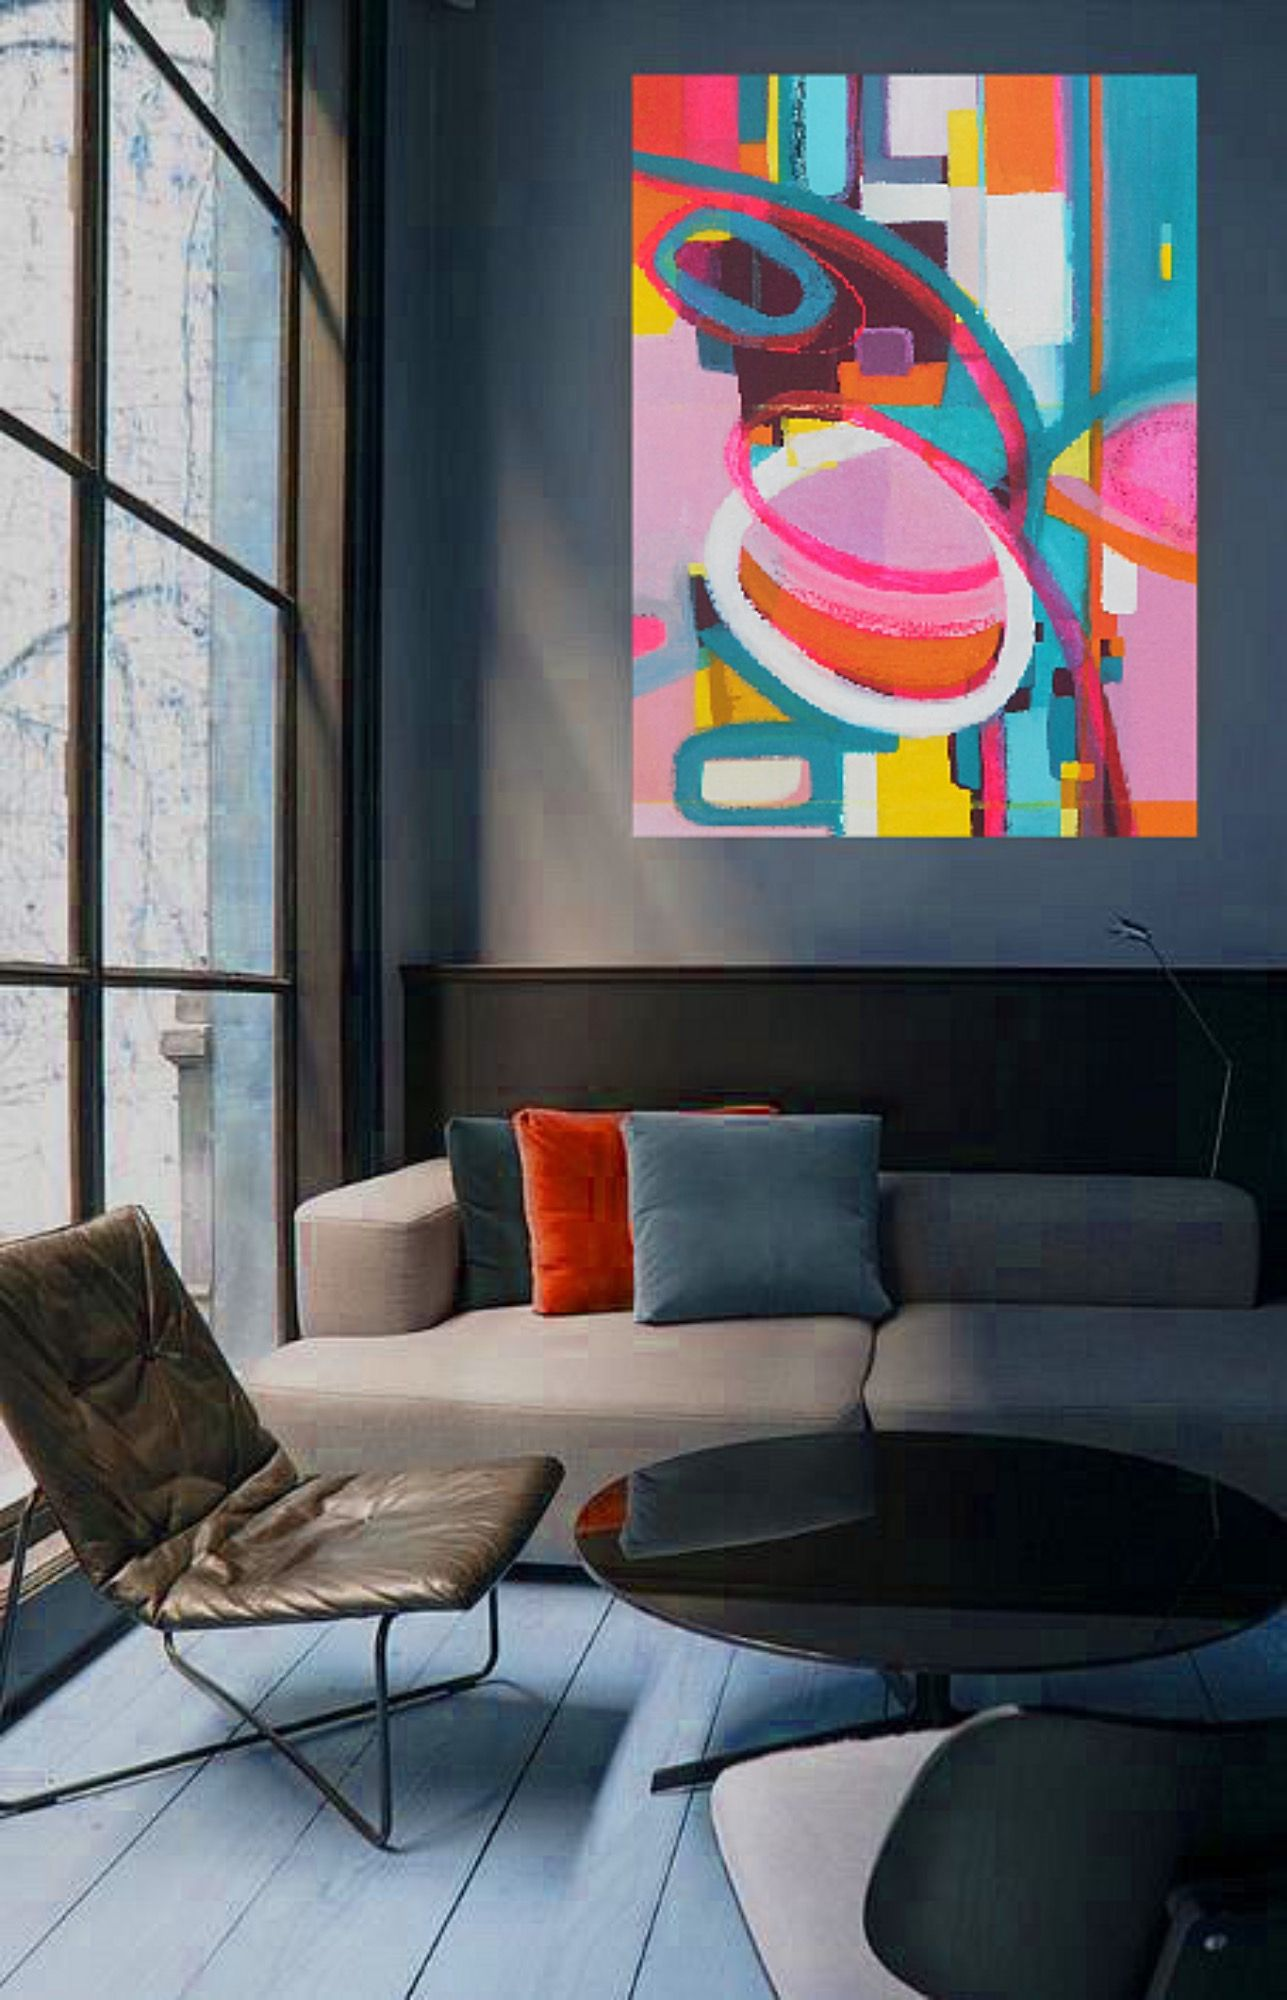 Bold Colorful Large 40 X 30 Abstract Art Oil Painting By Danielle Nelisse Completes Interior Design Accessories La Bedroom Artwork Art Painting Inspiration